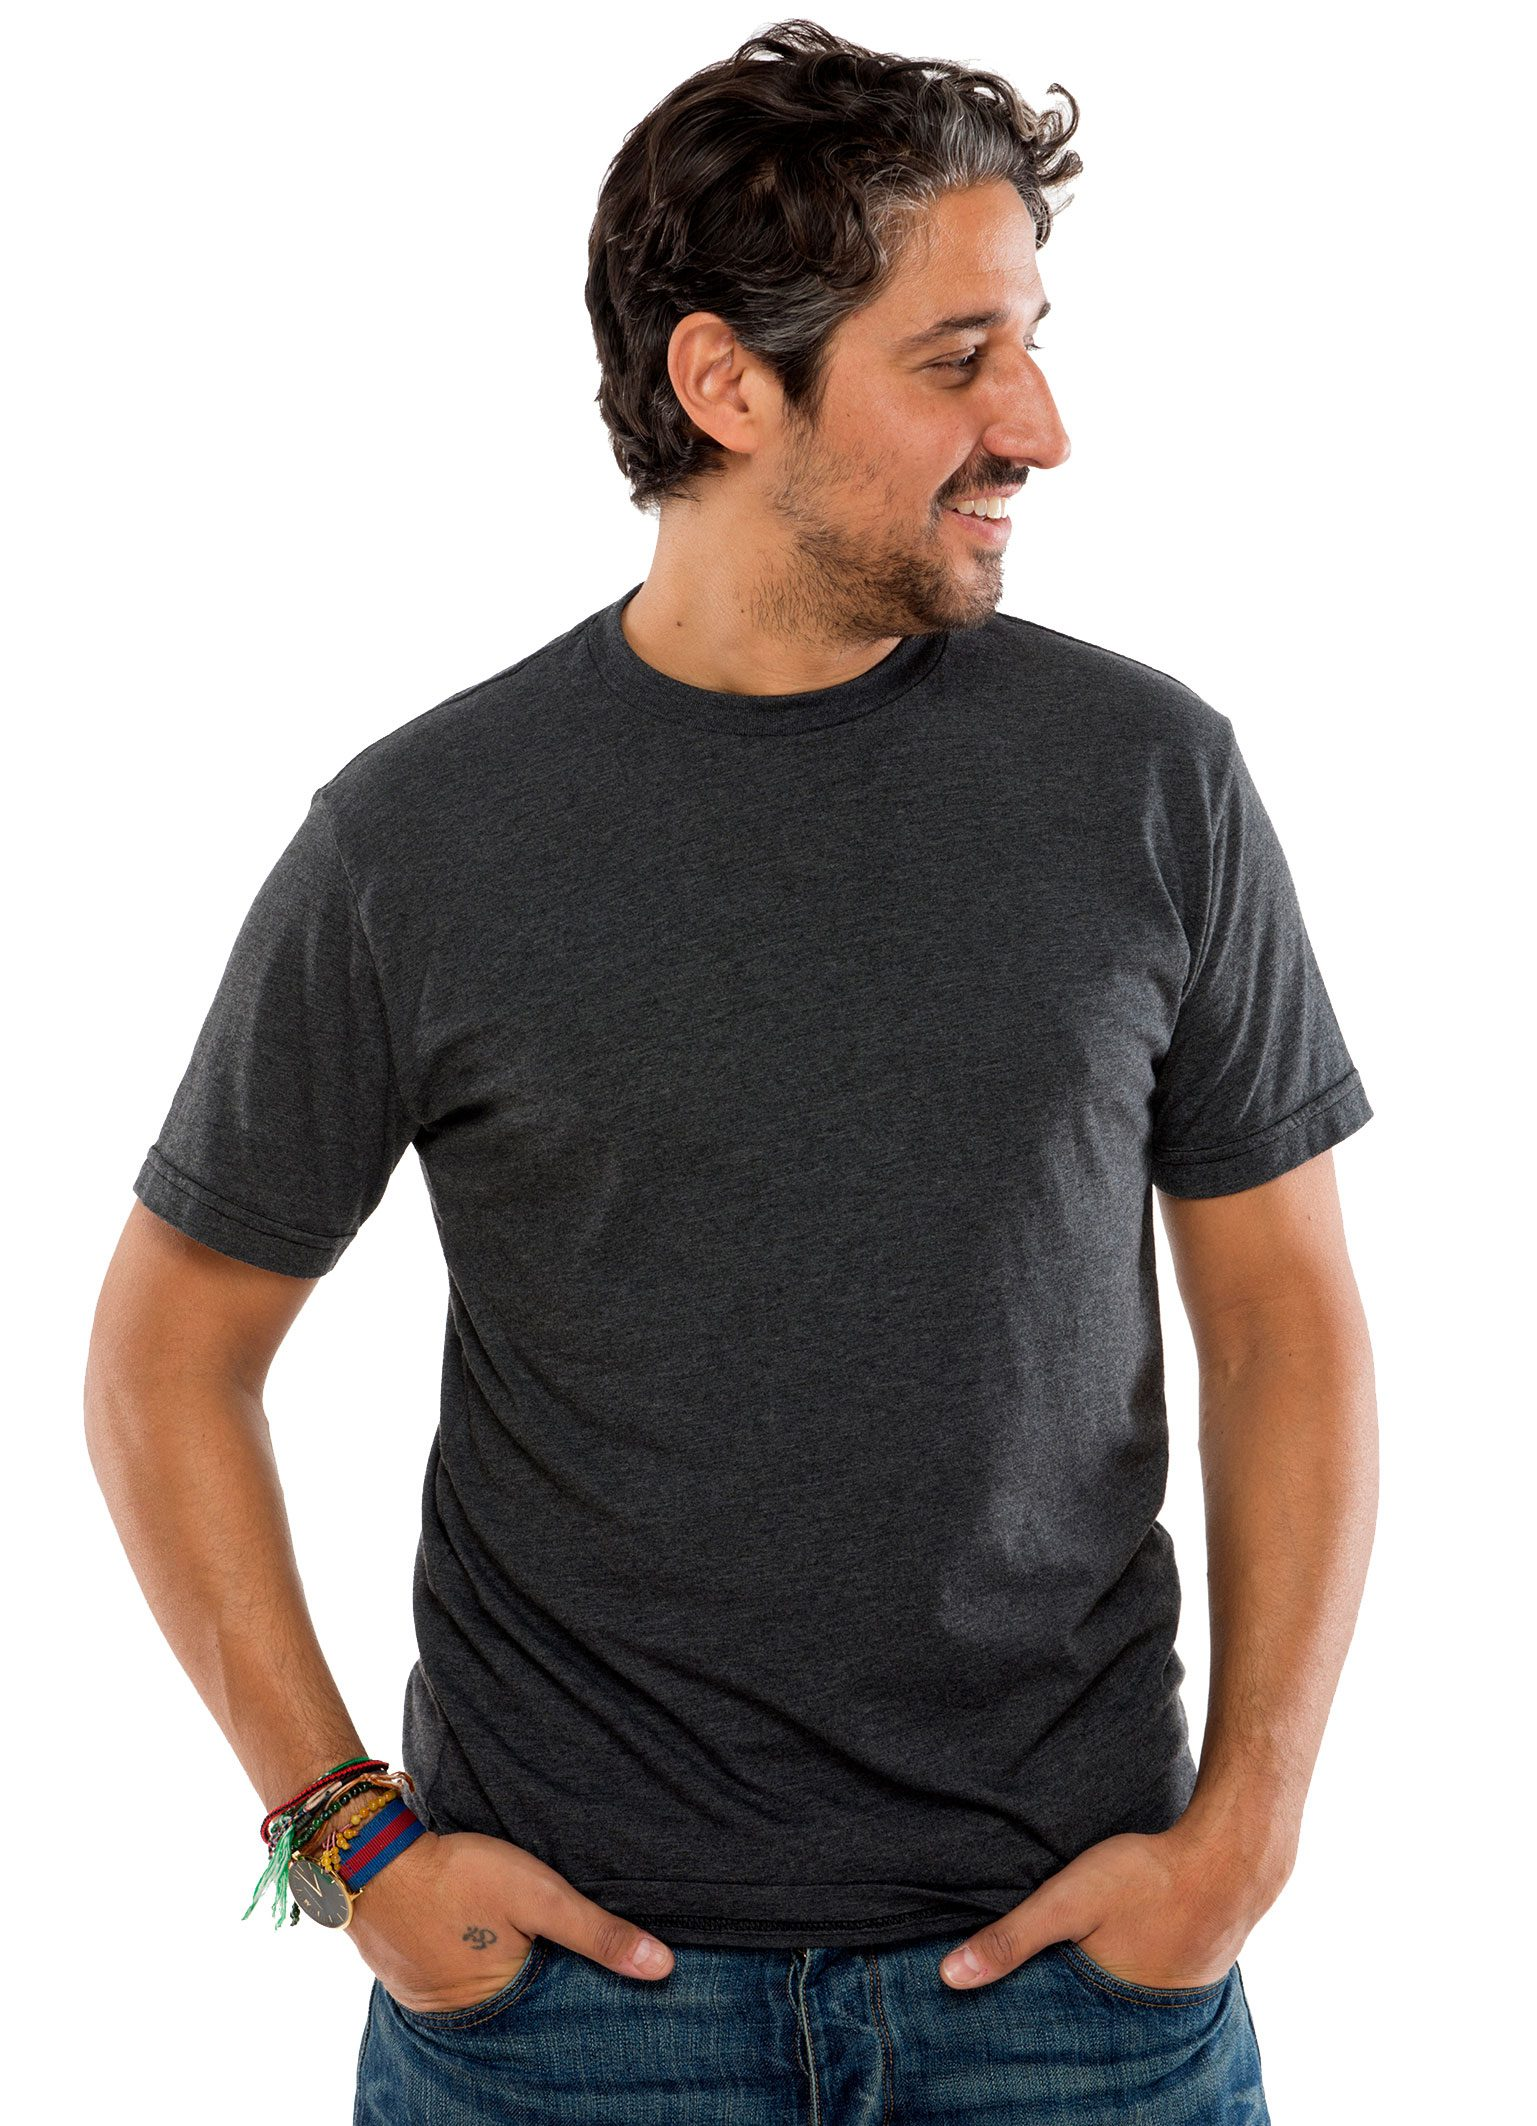 Heathered Crew Short Sleeve T-Shirt in Black Heather